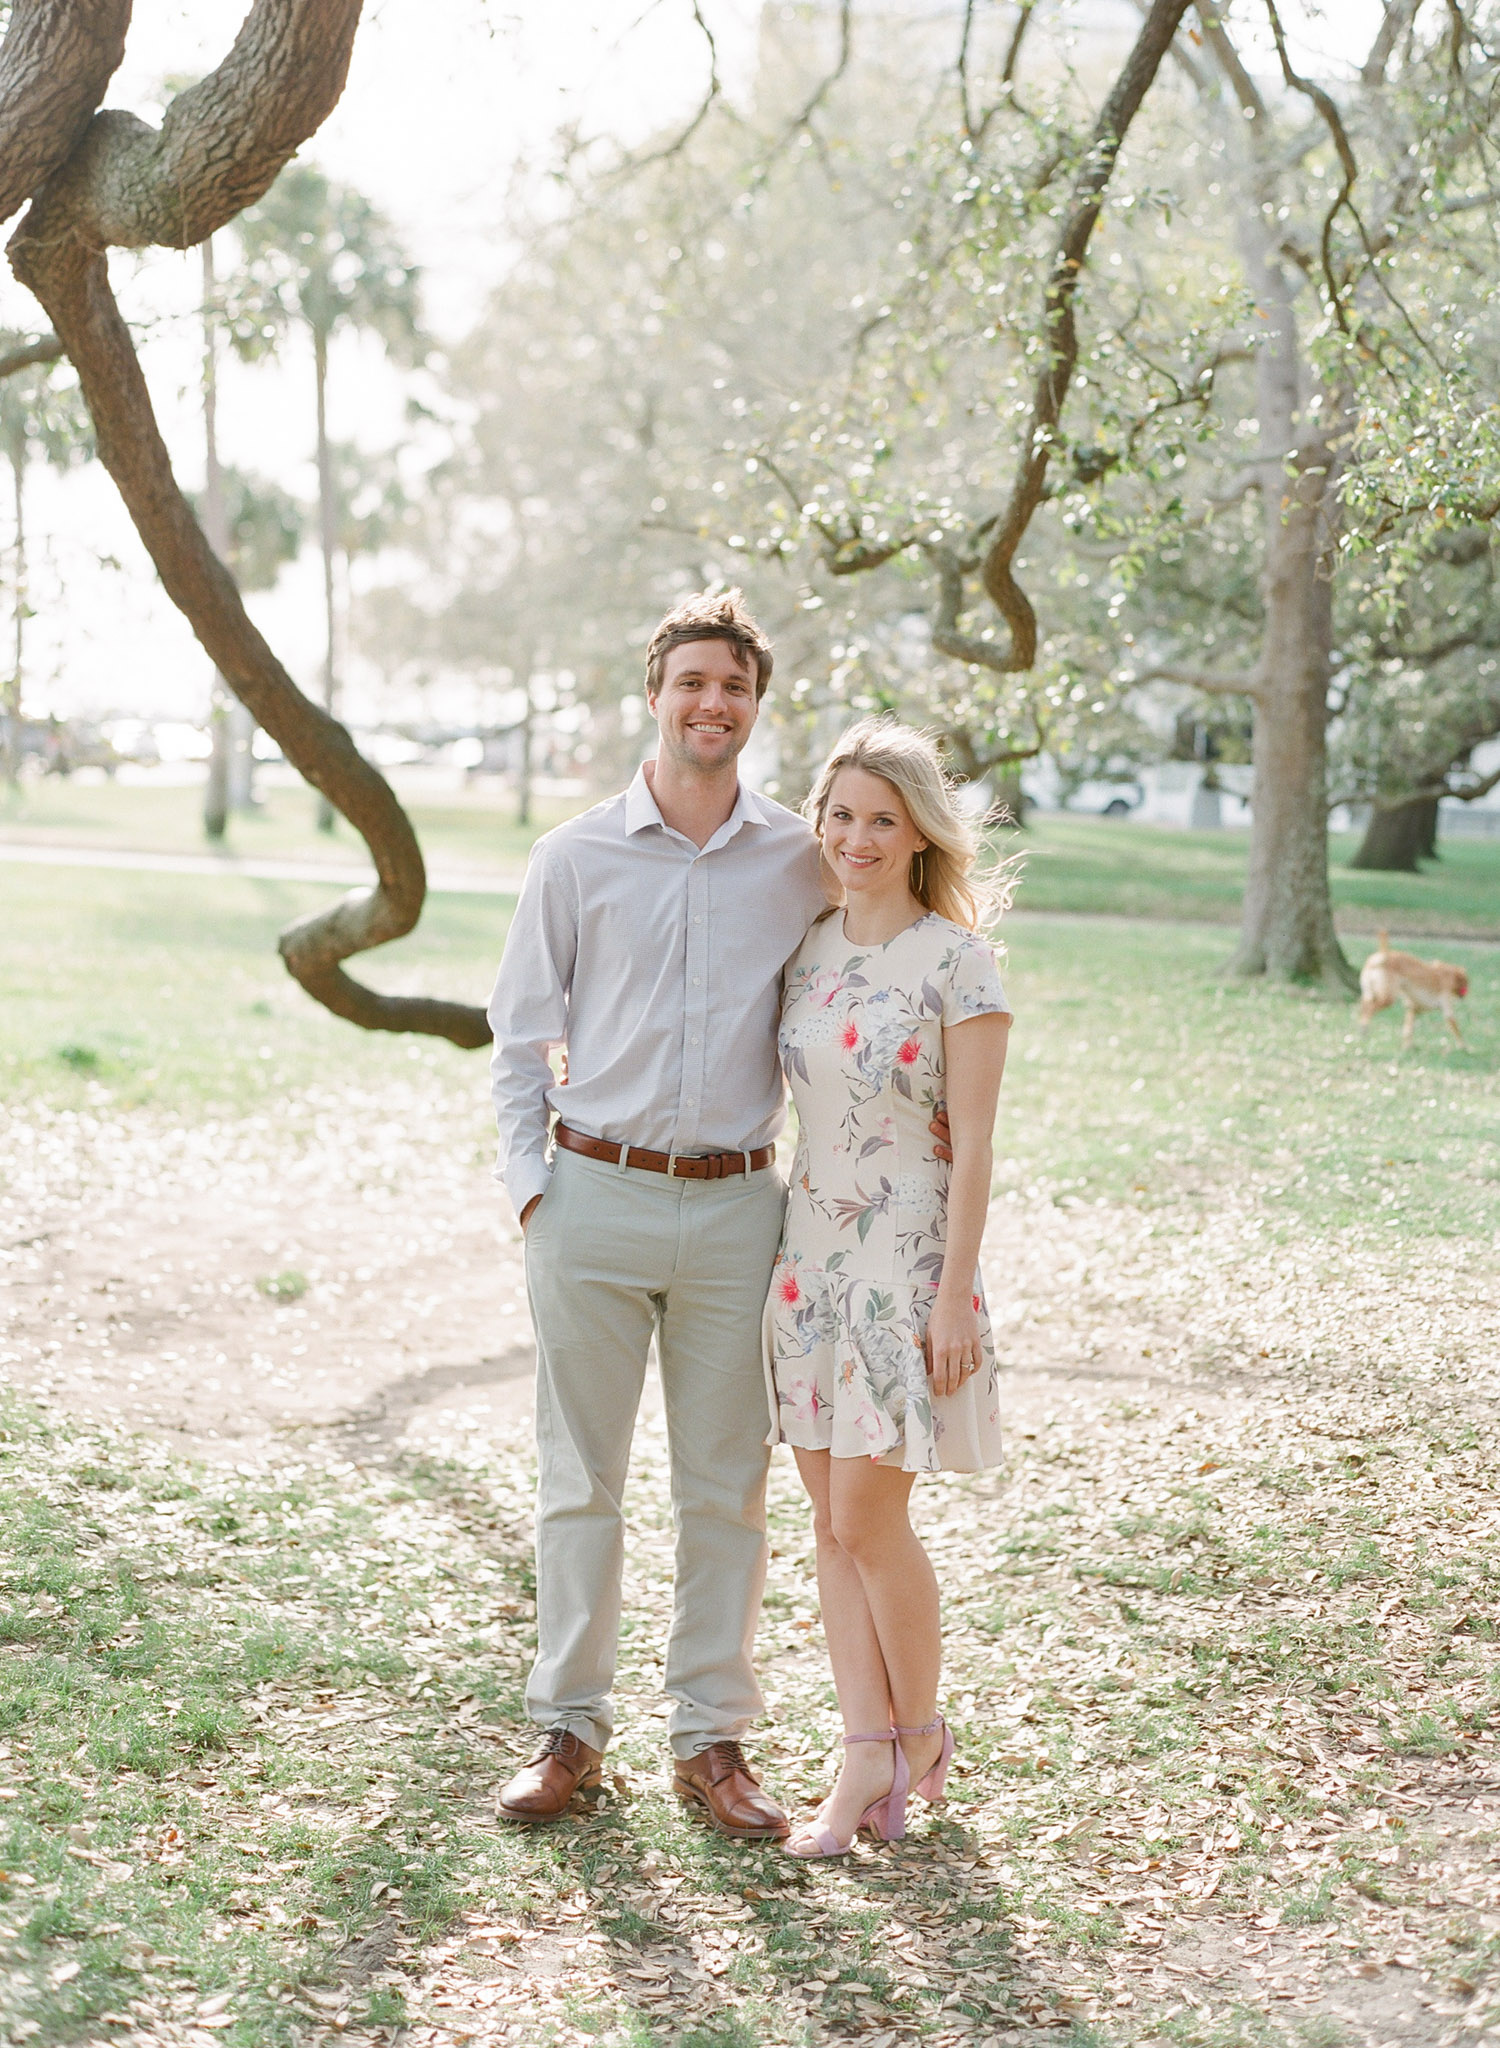 Charleston-Engagement-Session-Photos-49.jpg